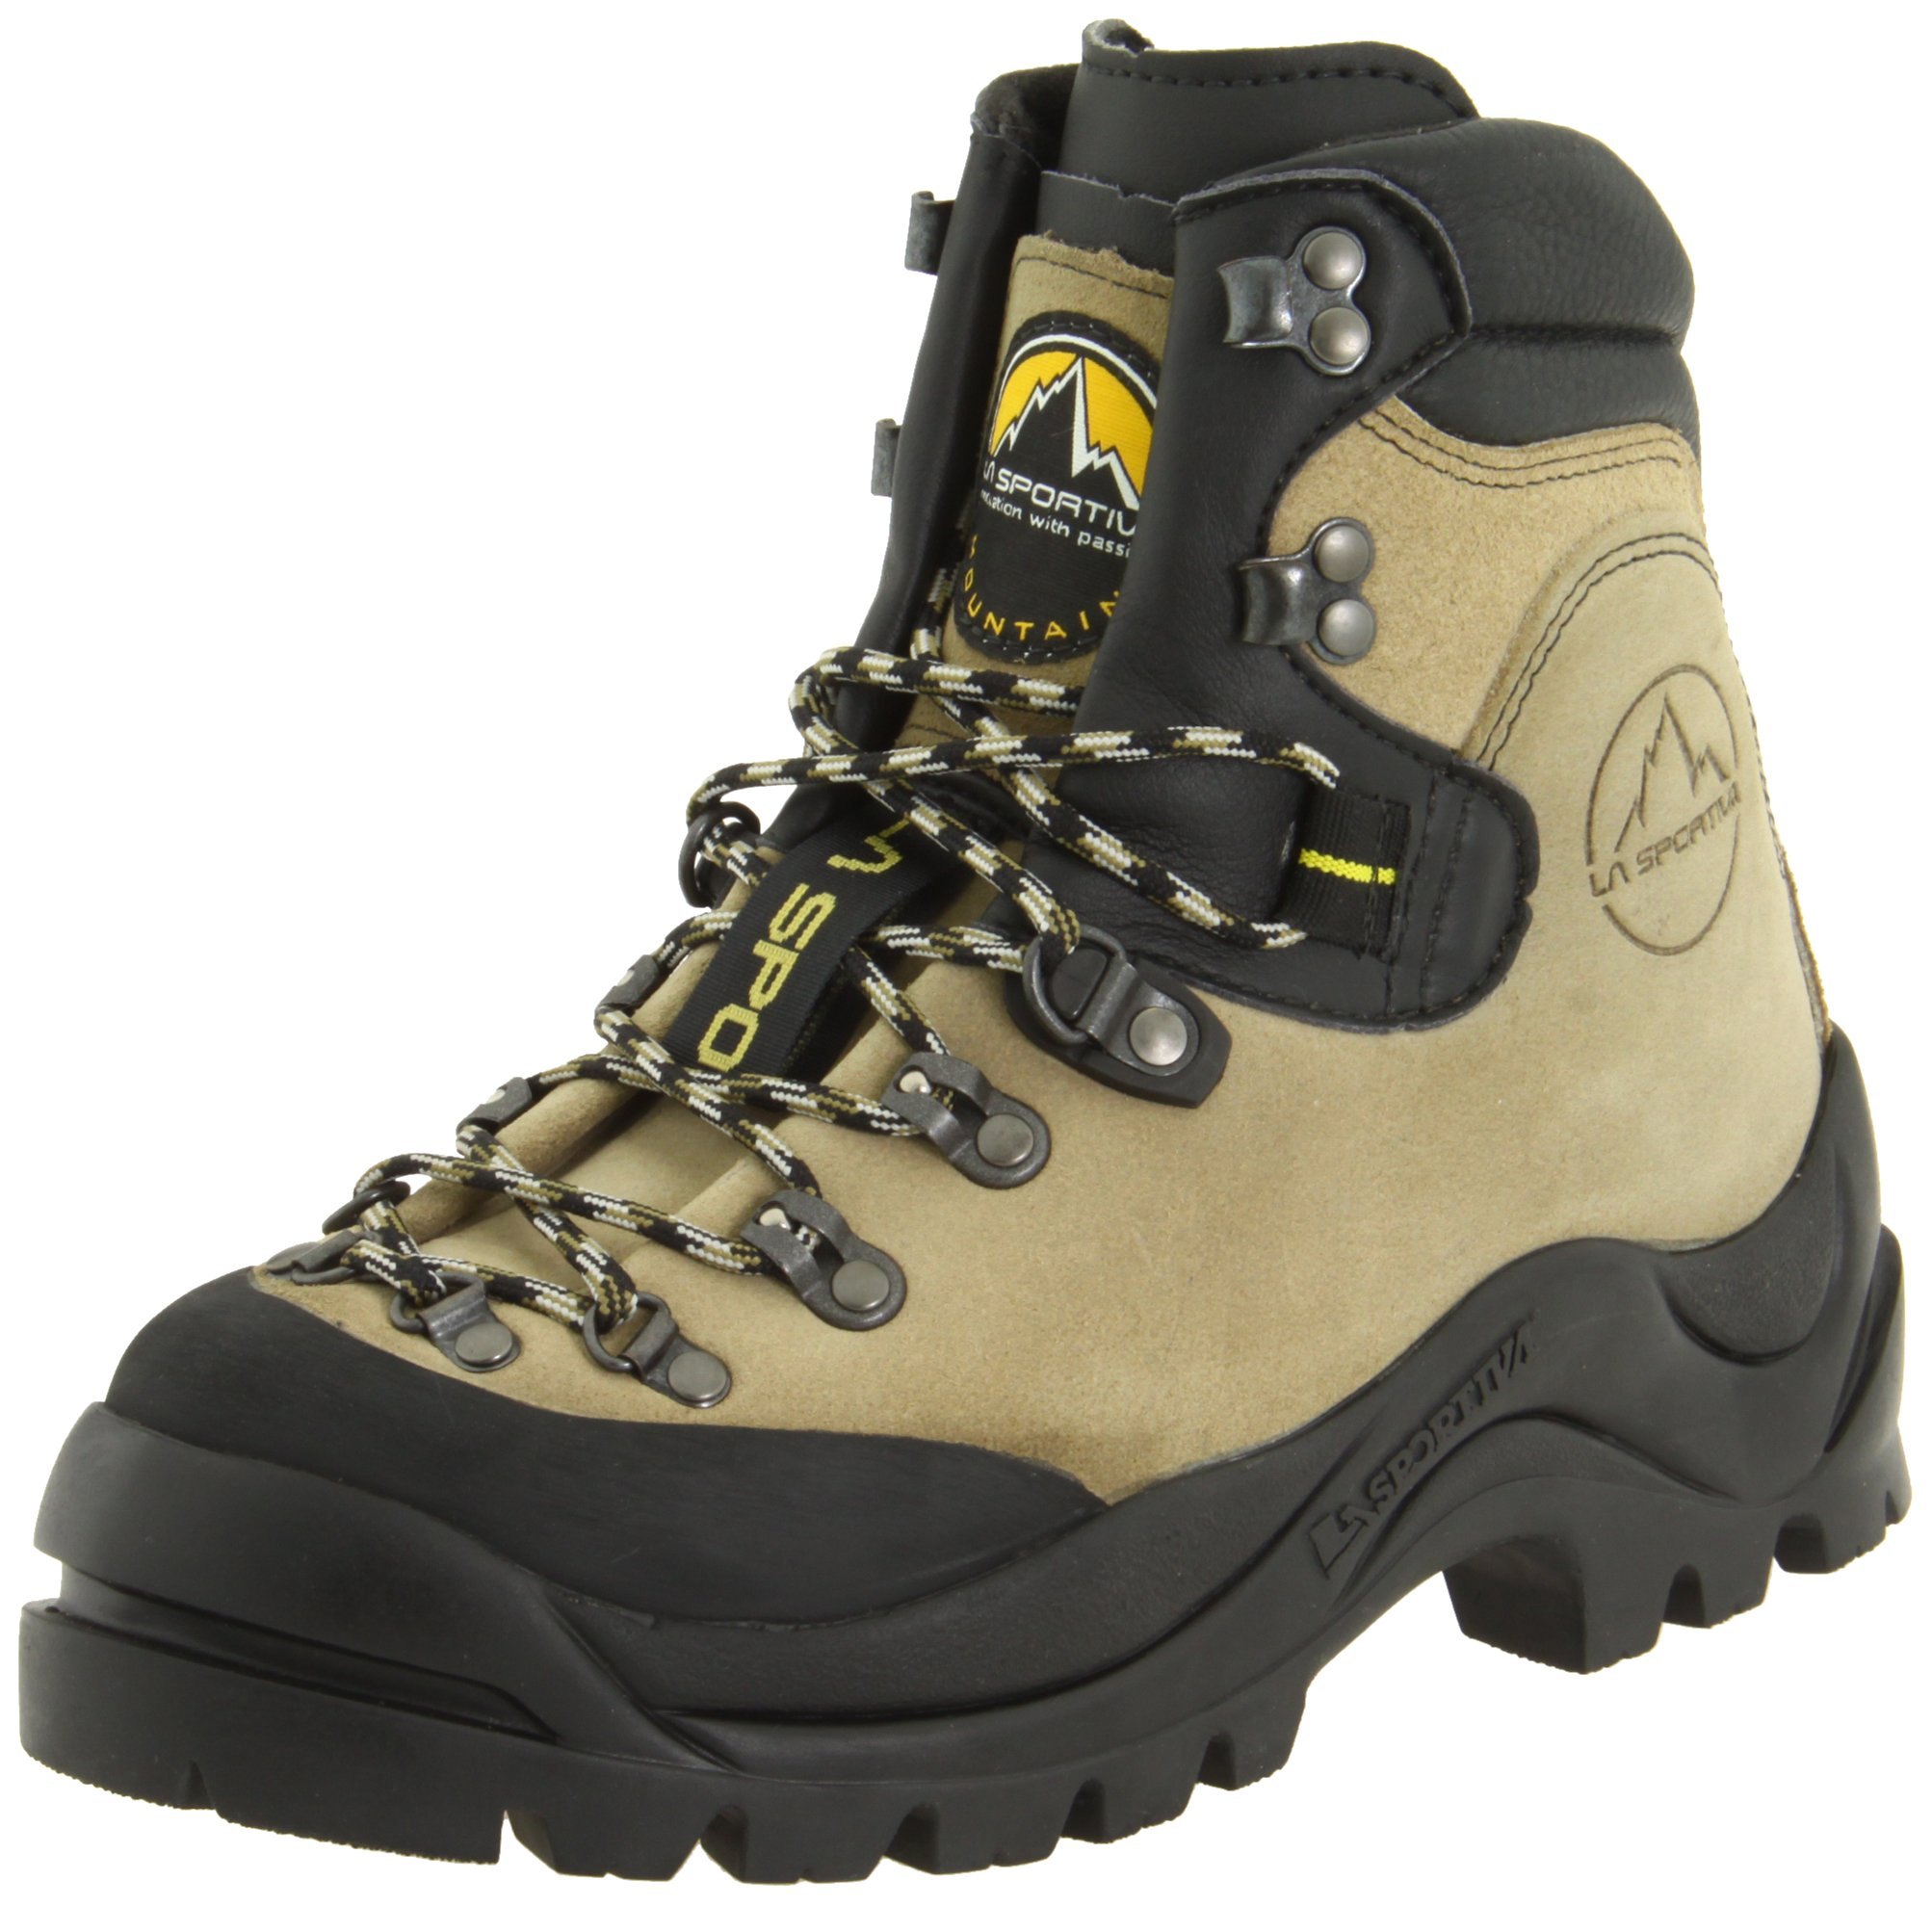 La Sportiva Men's Makalu Hiking Shoe, Natural, 44 by La Sportiva